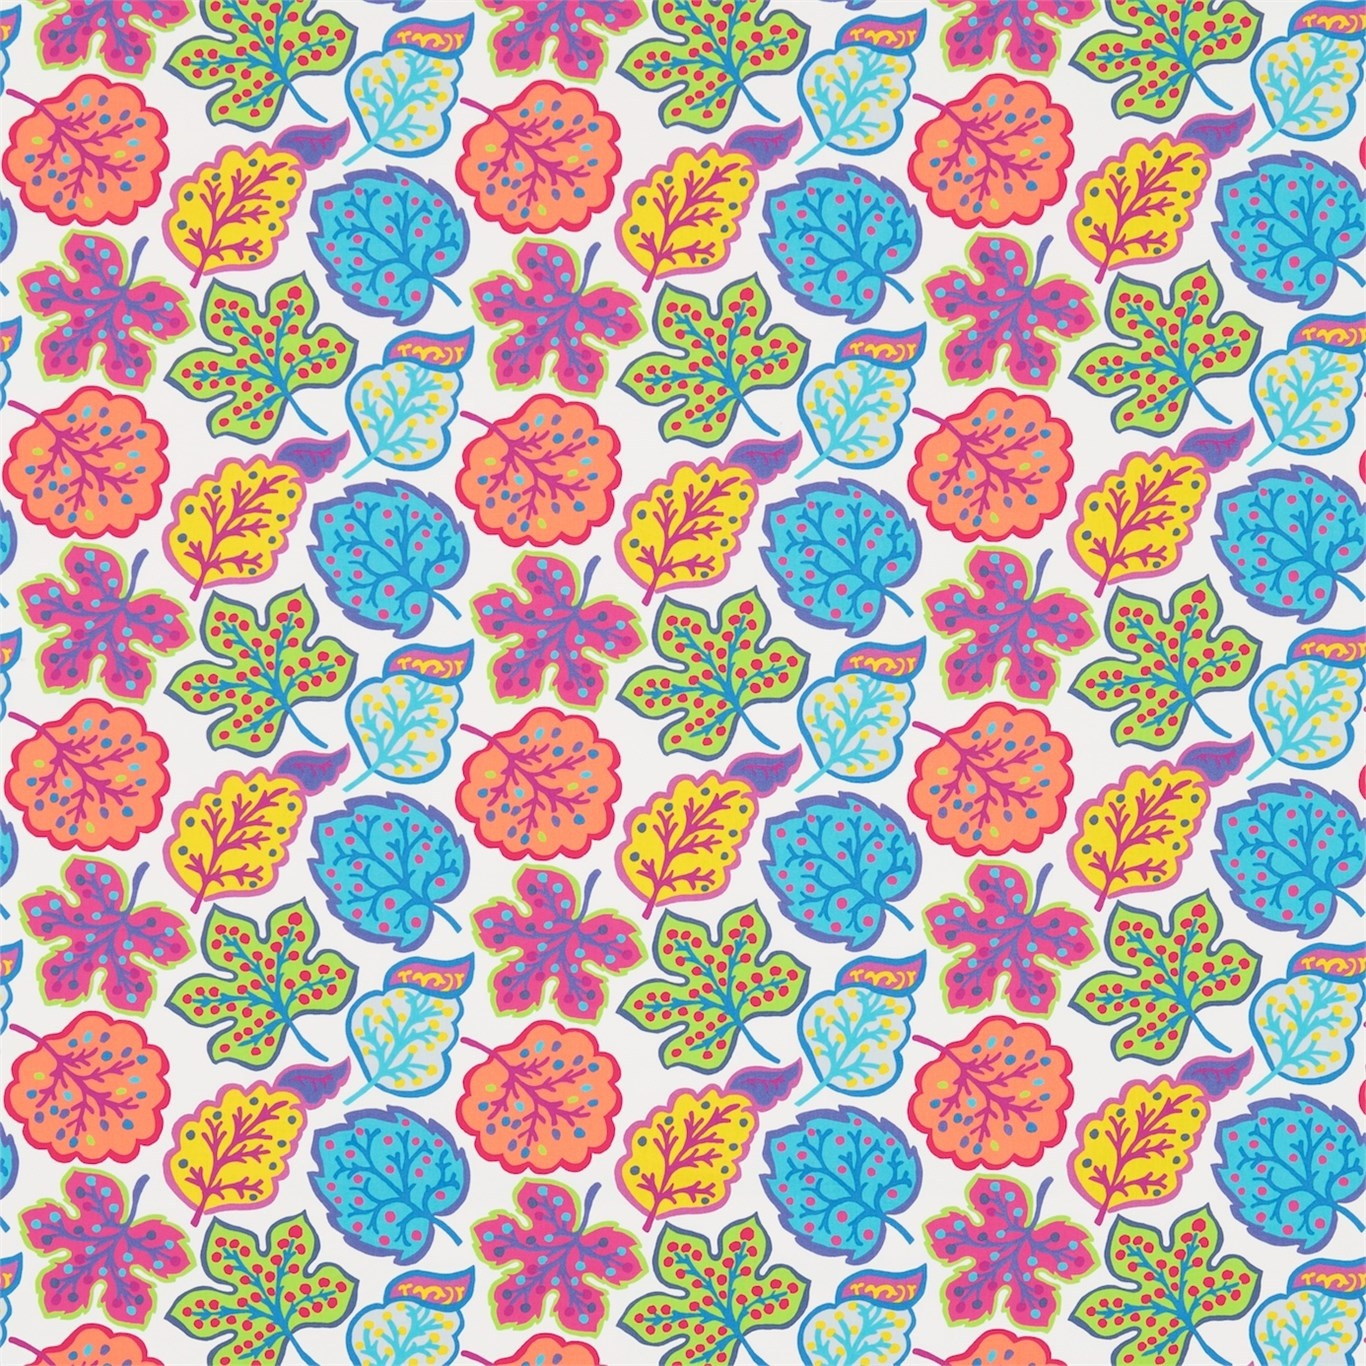 Image of Sanderson Jewel Leaves Brights Fabric 224622